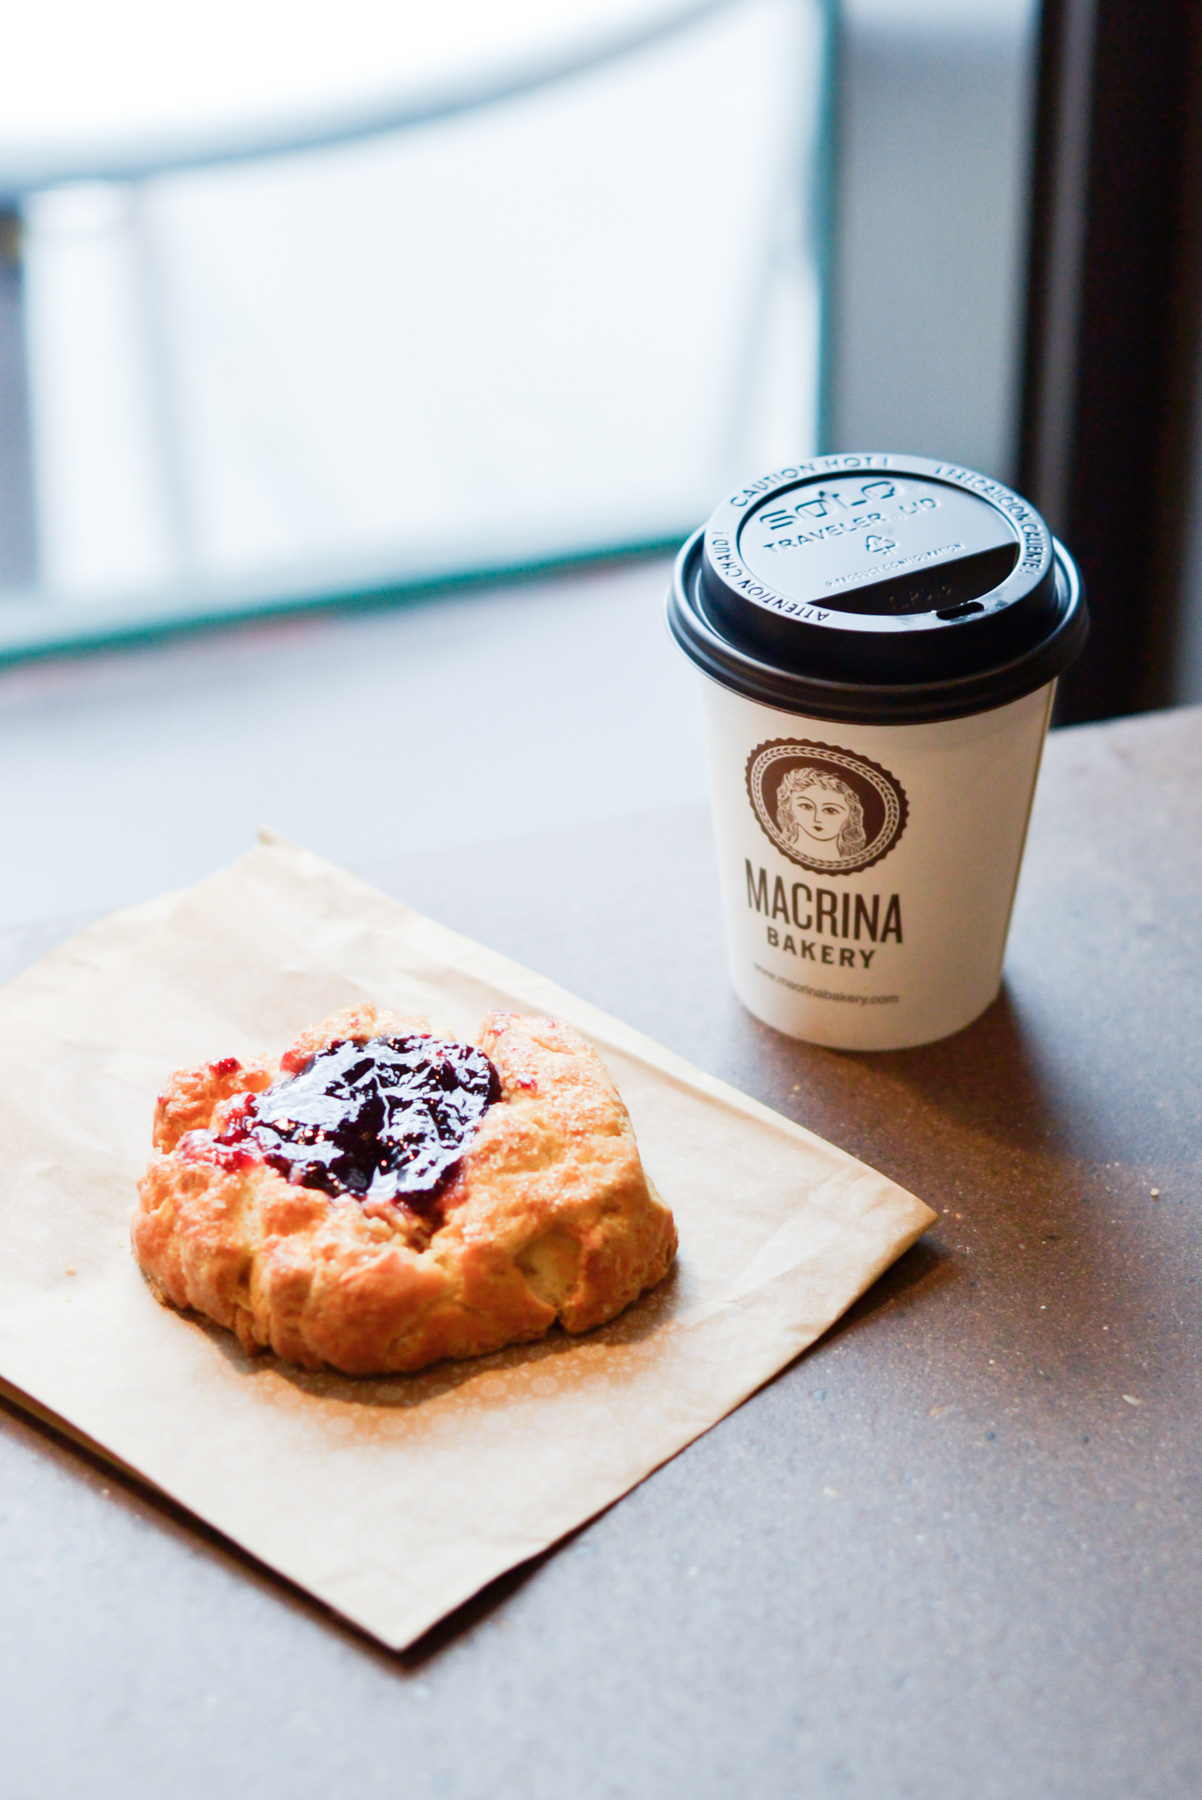 Macrina Bakery coffee and biscuit in Seattle